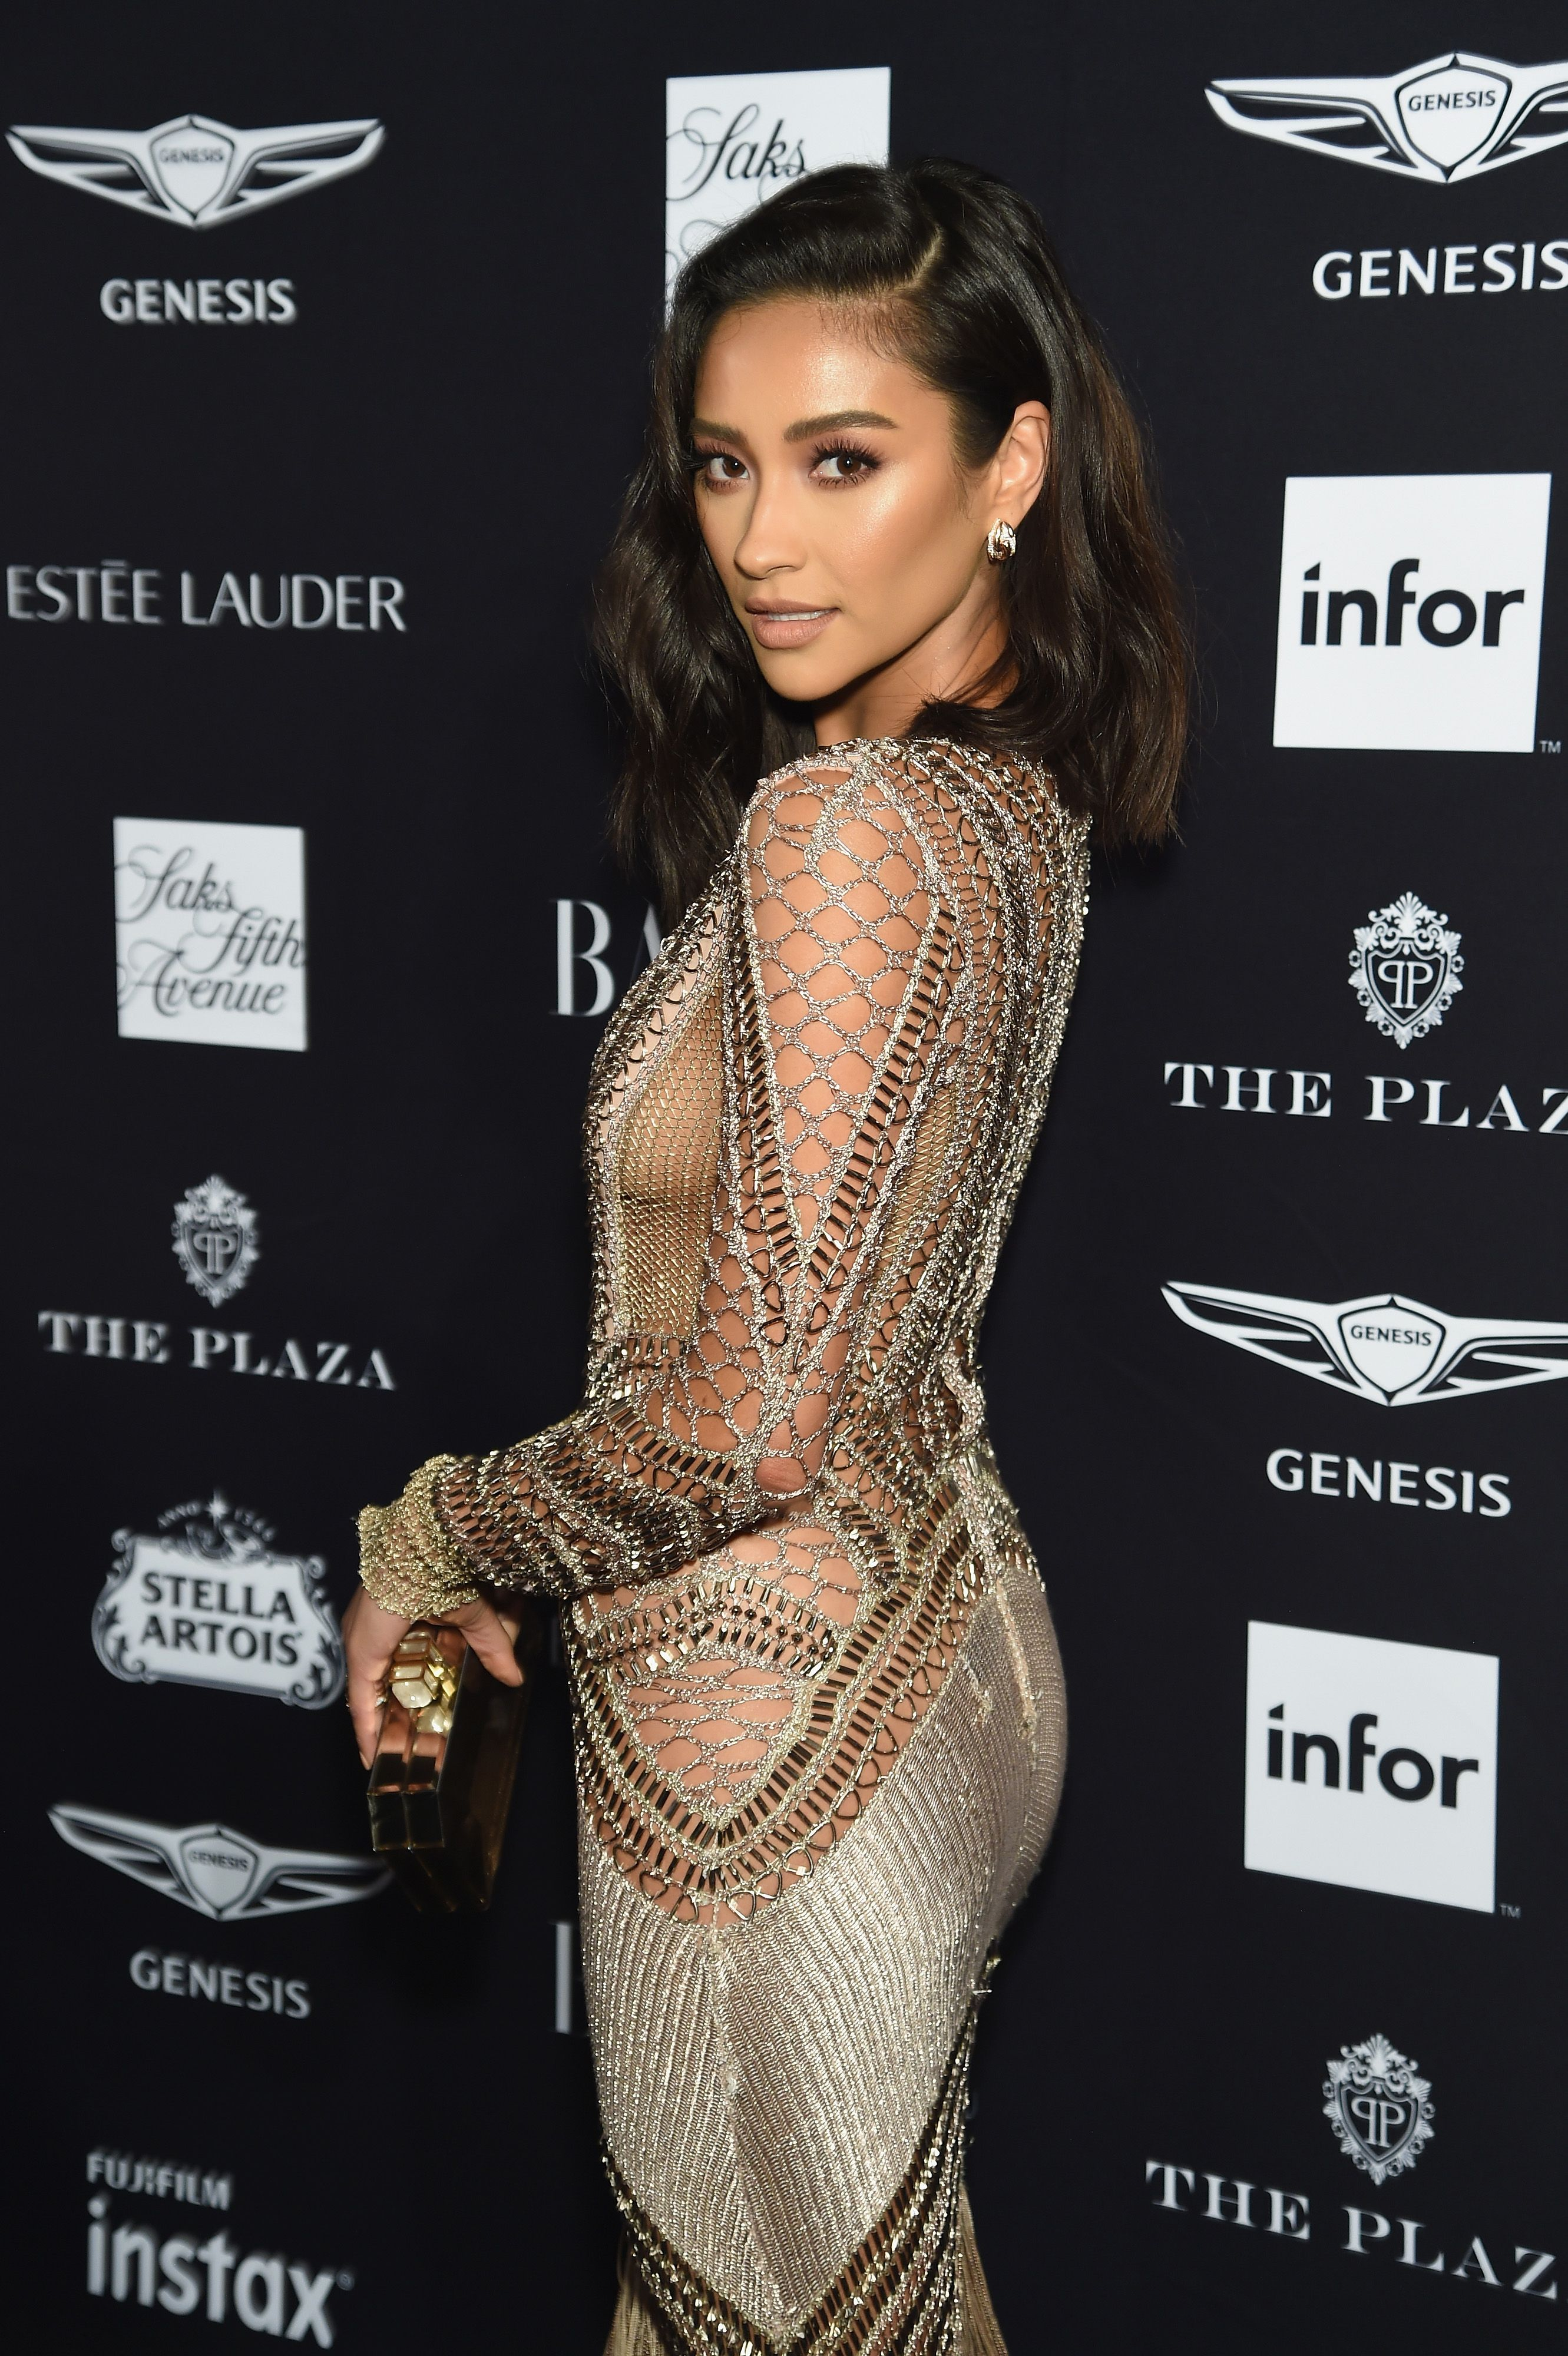 c9255c3fe1 Shay Mitchell - Harper s Bazaar ICONS party in New York